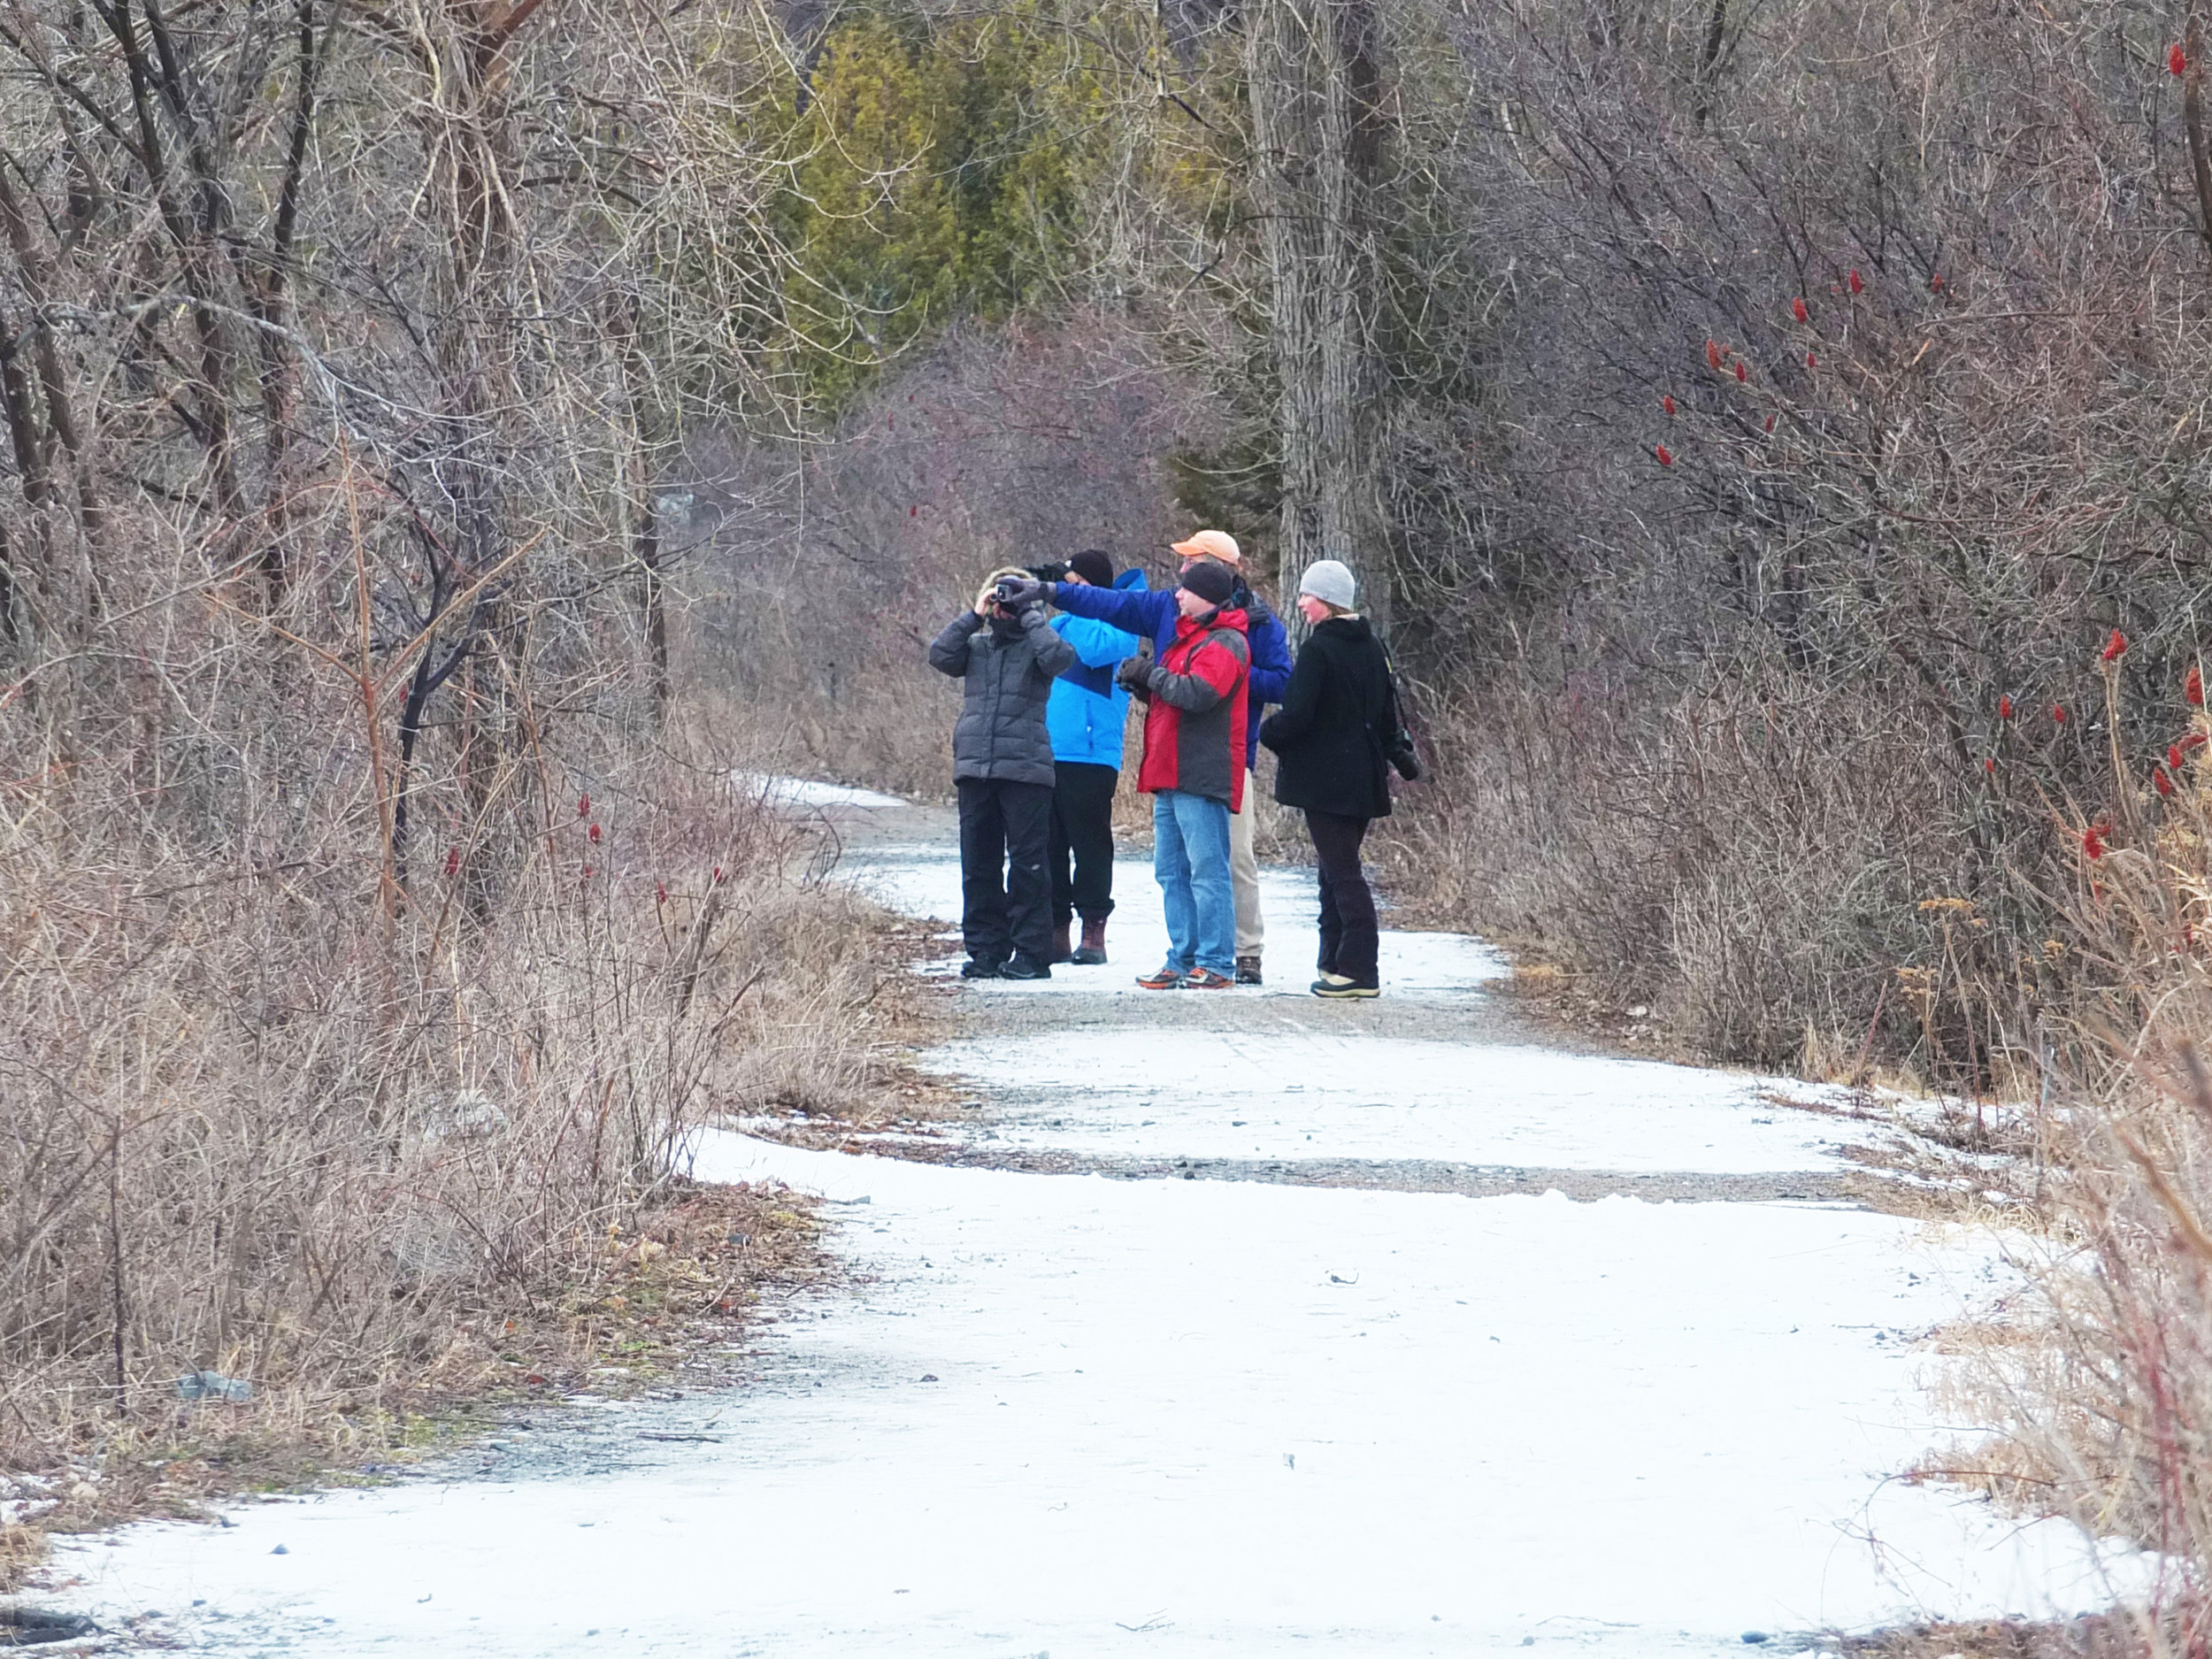 Walkers on Allen Point Trail look for winter birds.